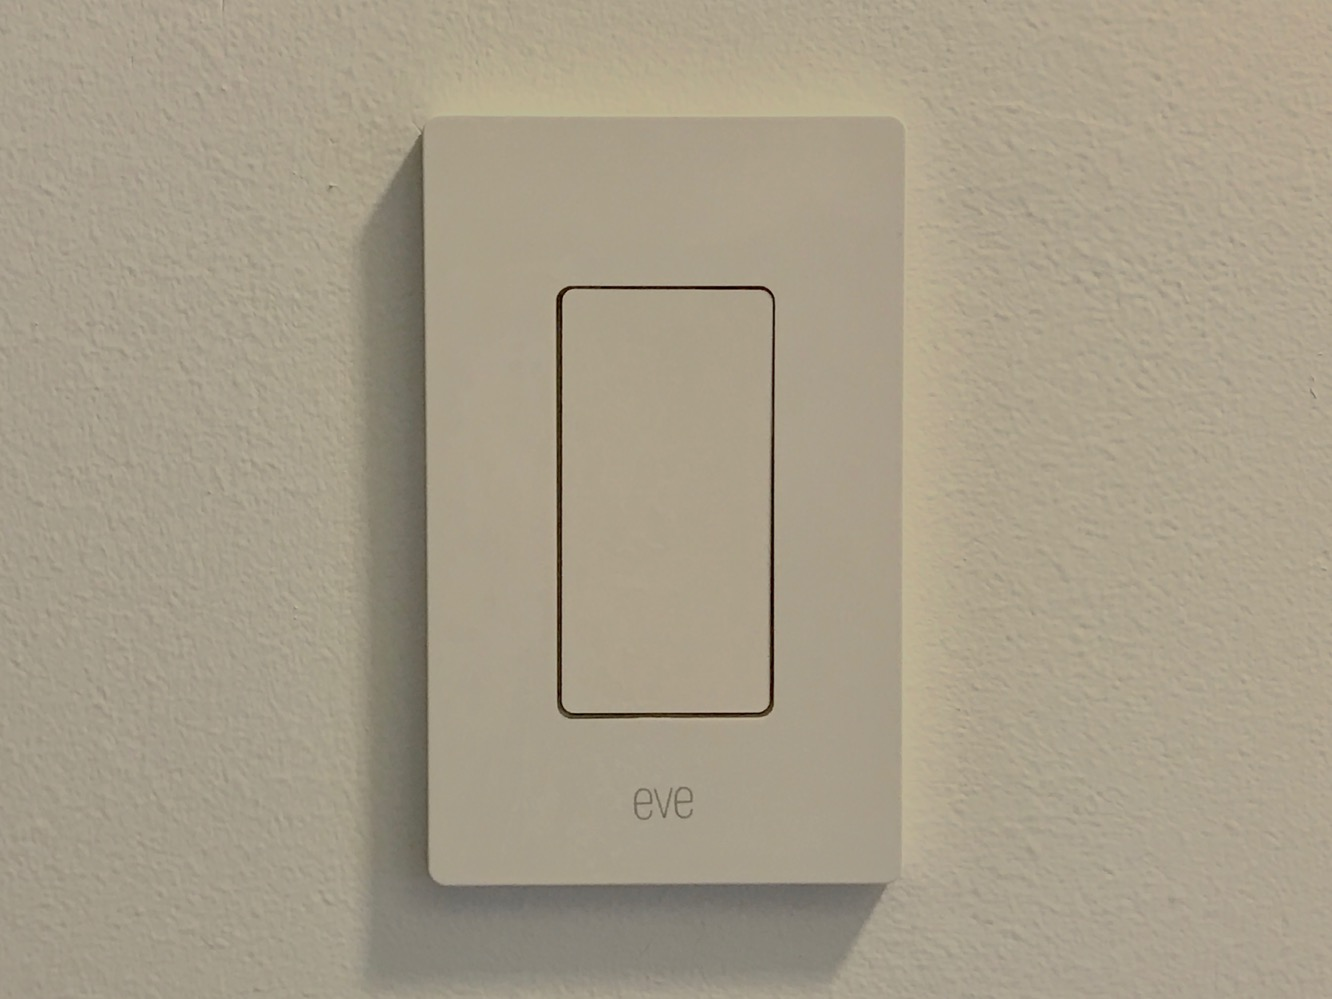 Switch Light Review Elgato Eve Light Switch